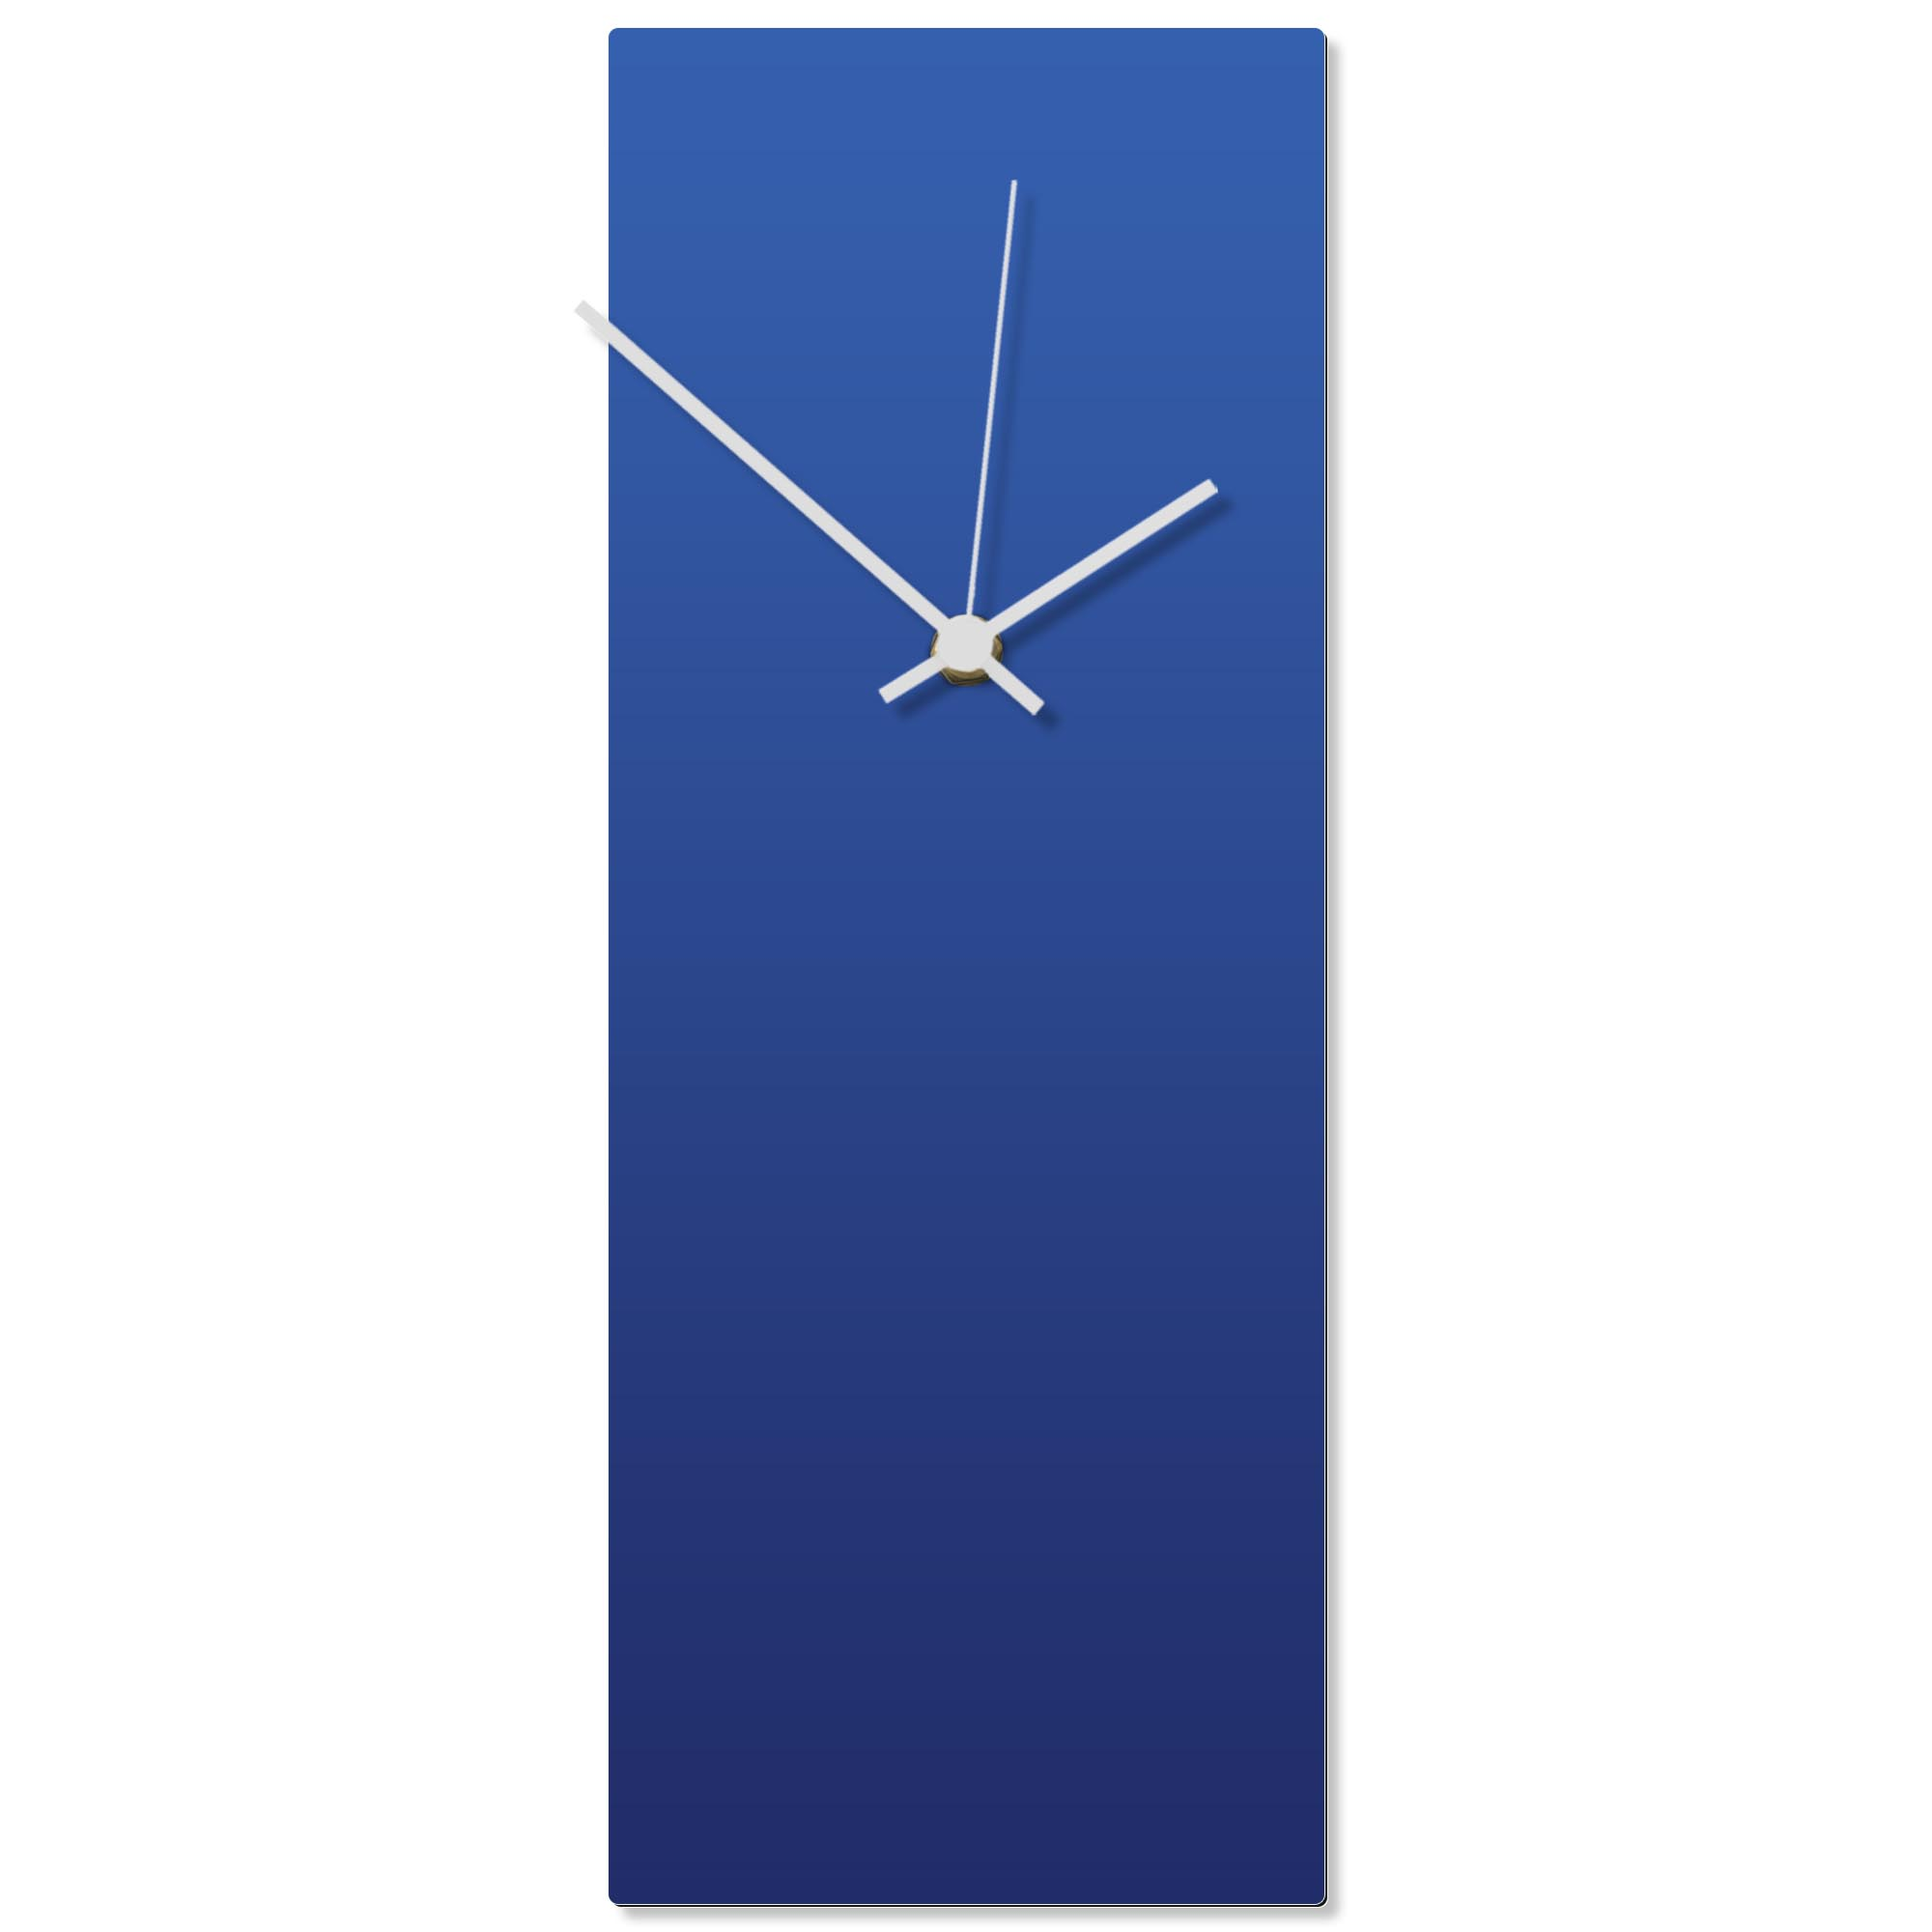 Blueout White Clock 6x16in. Aluminum Polymetal